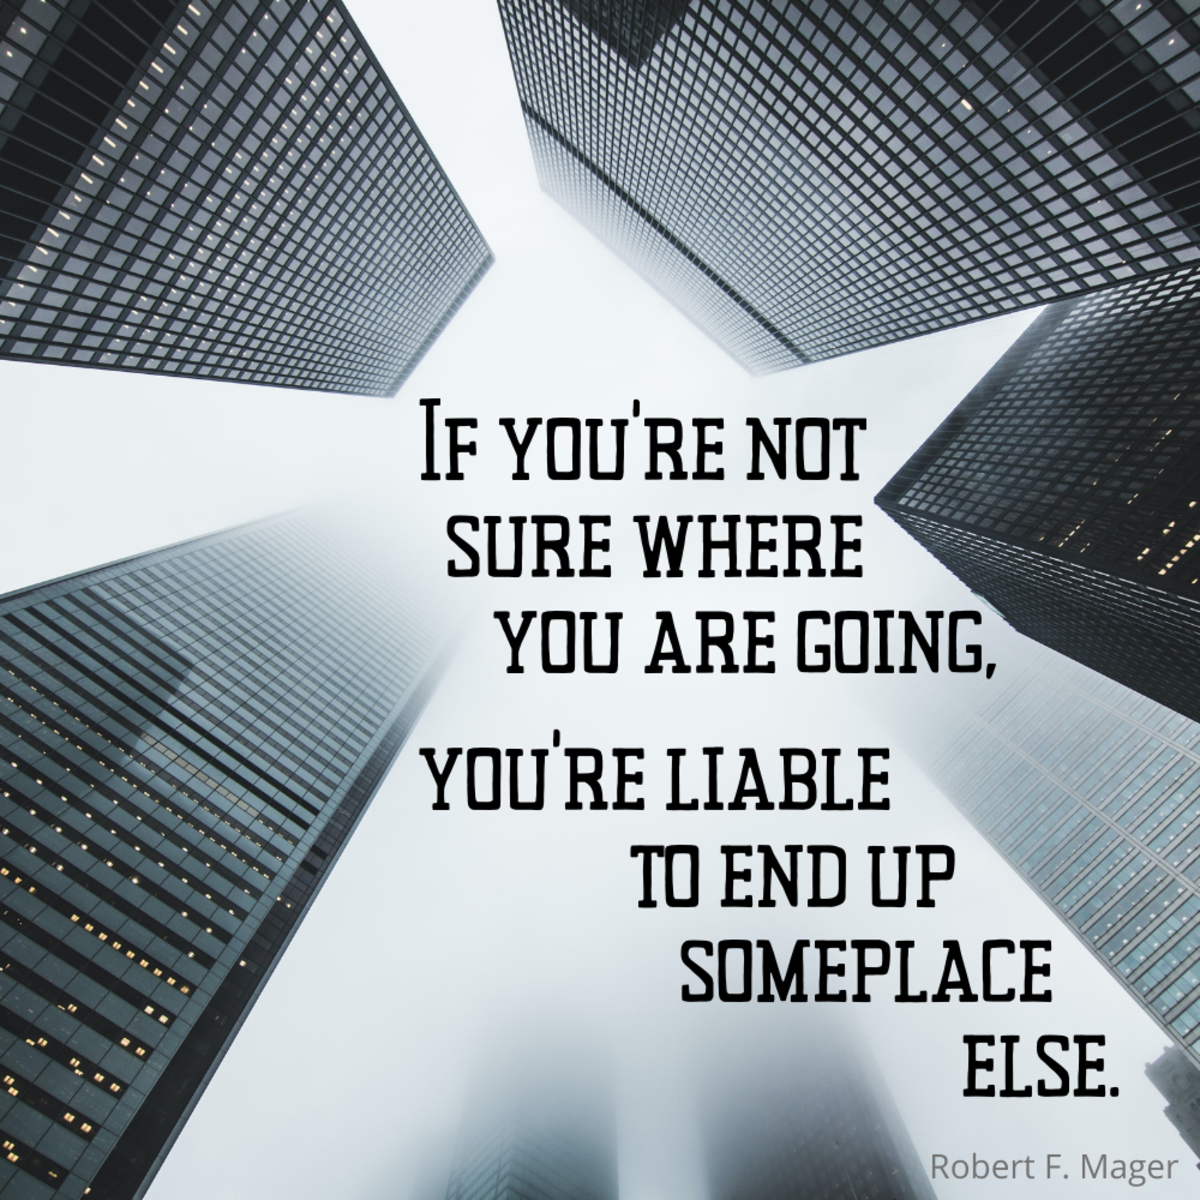 "If you're not sure where you are going, you're liable to end up someplace else."" Robert F. Mager"